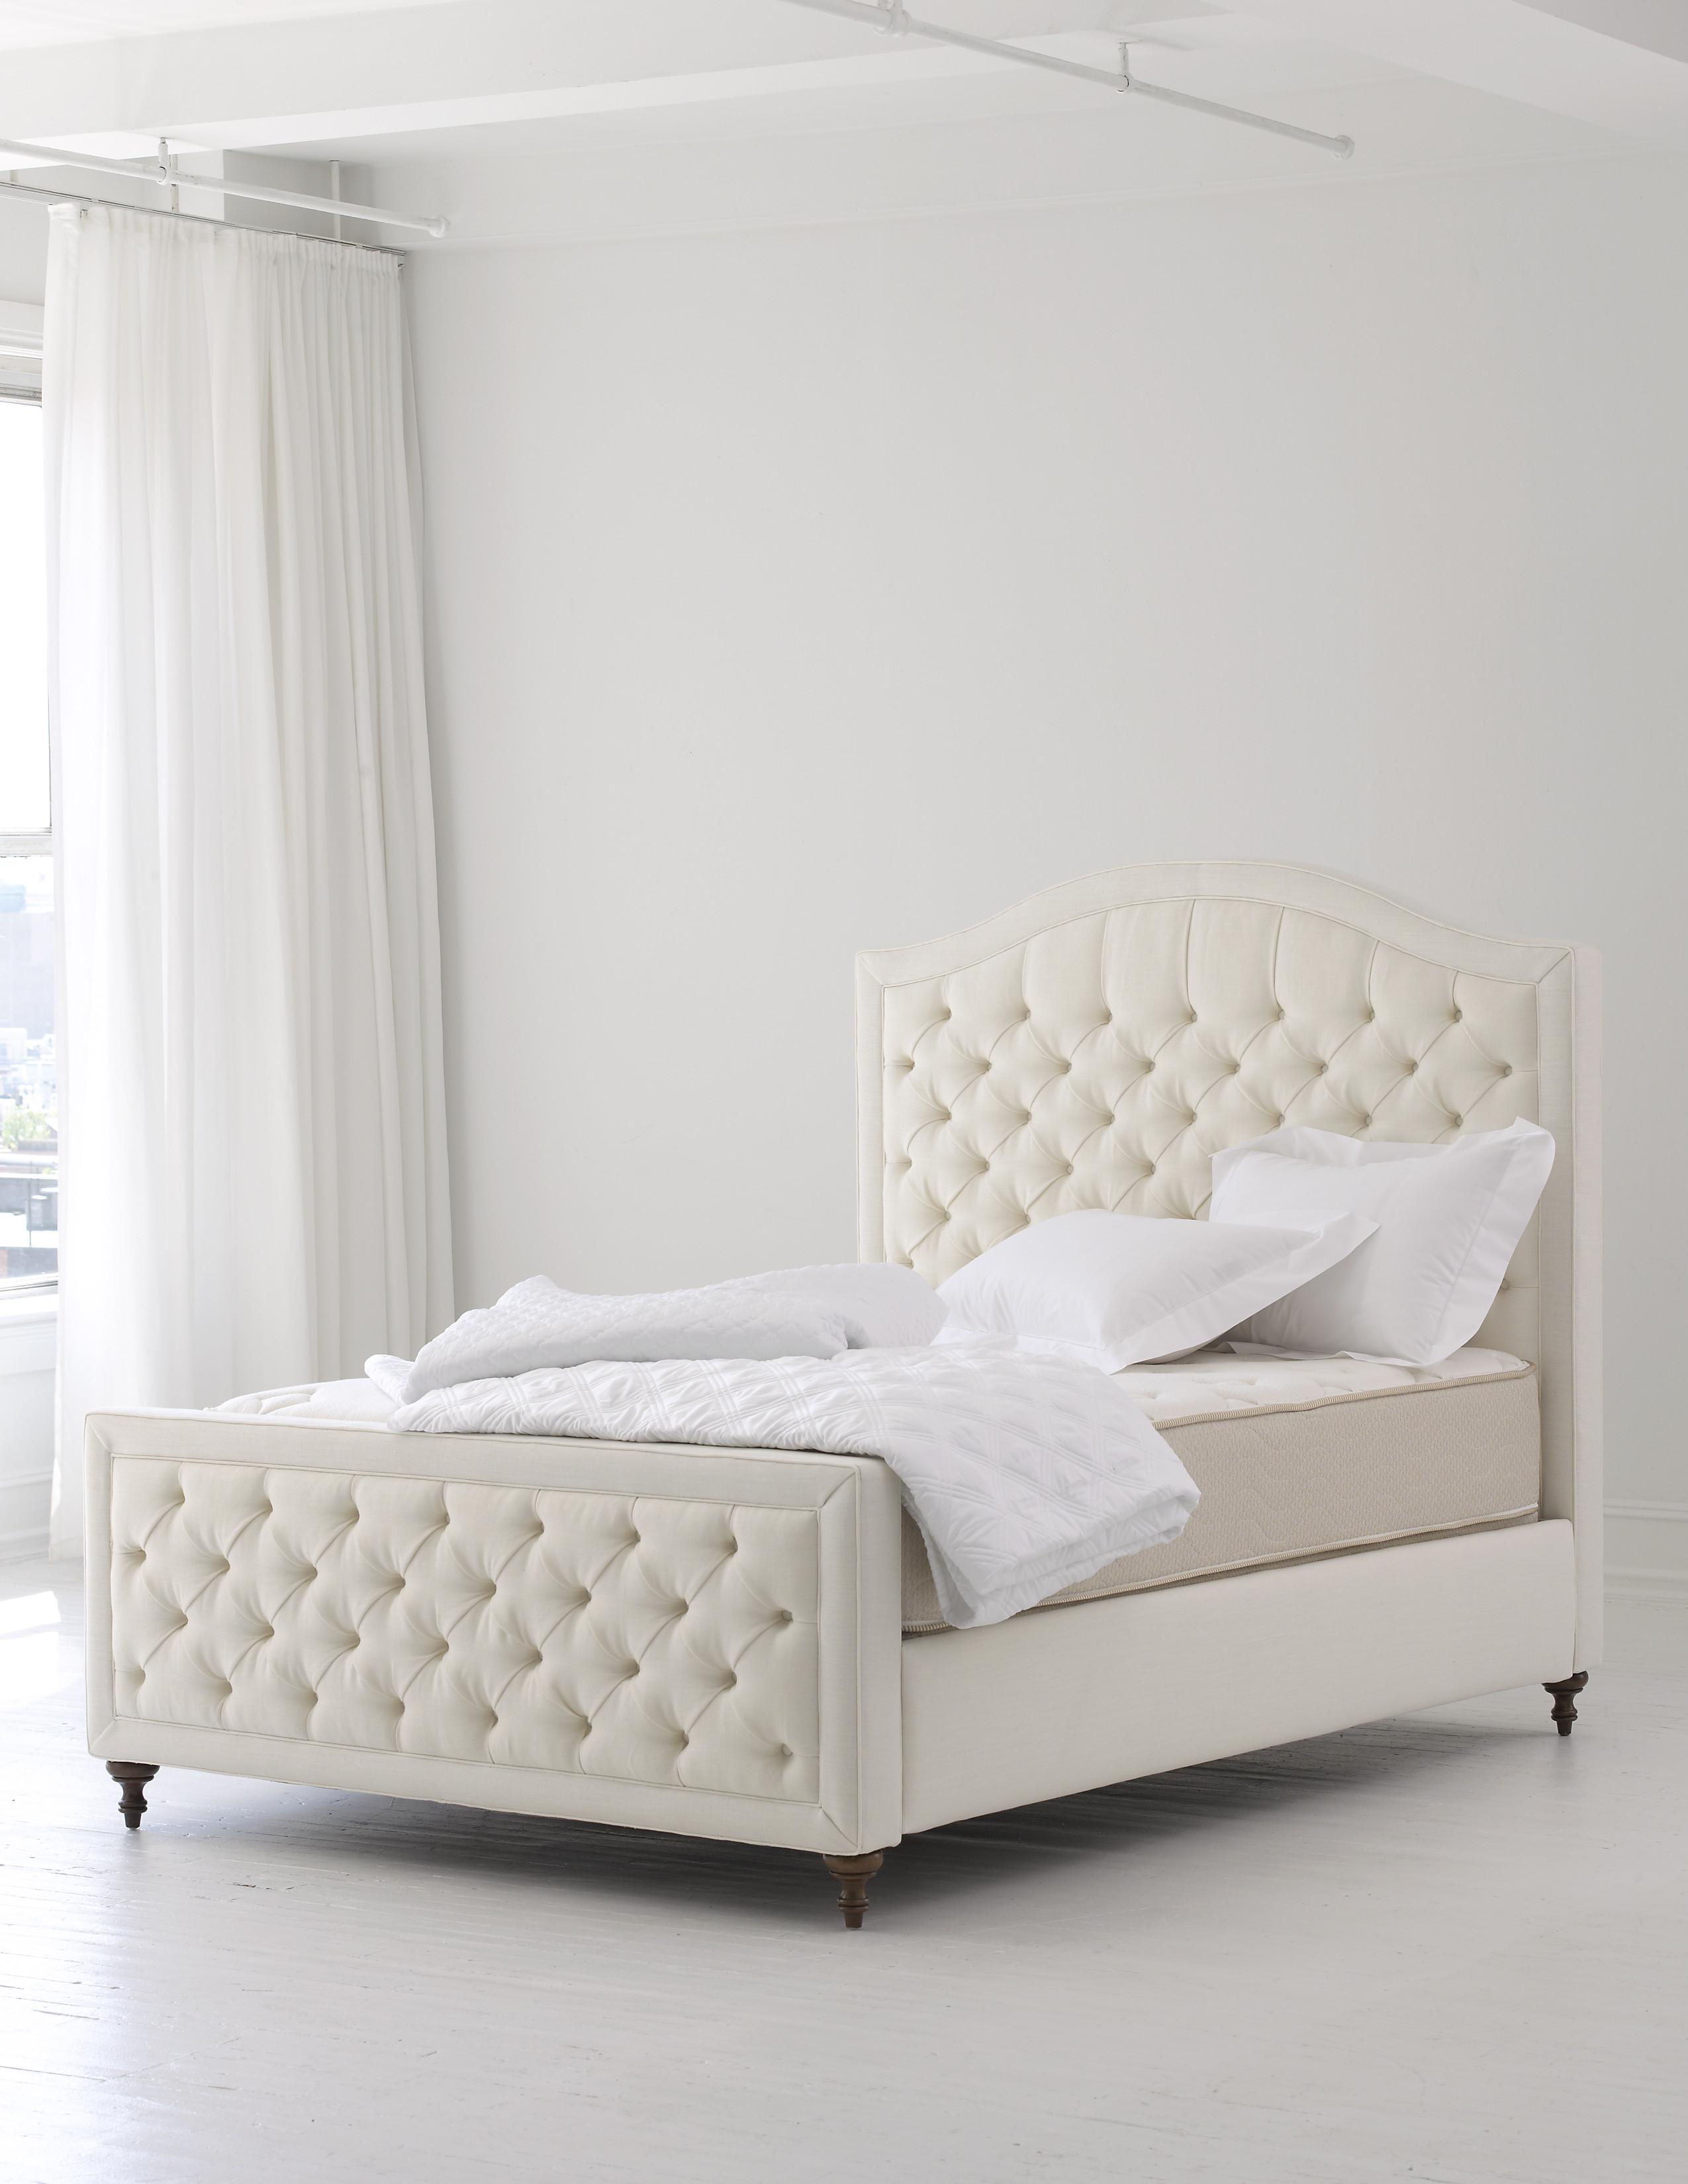 Excellent White High Tufted Bed Headboard Cover